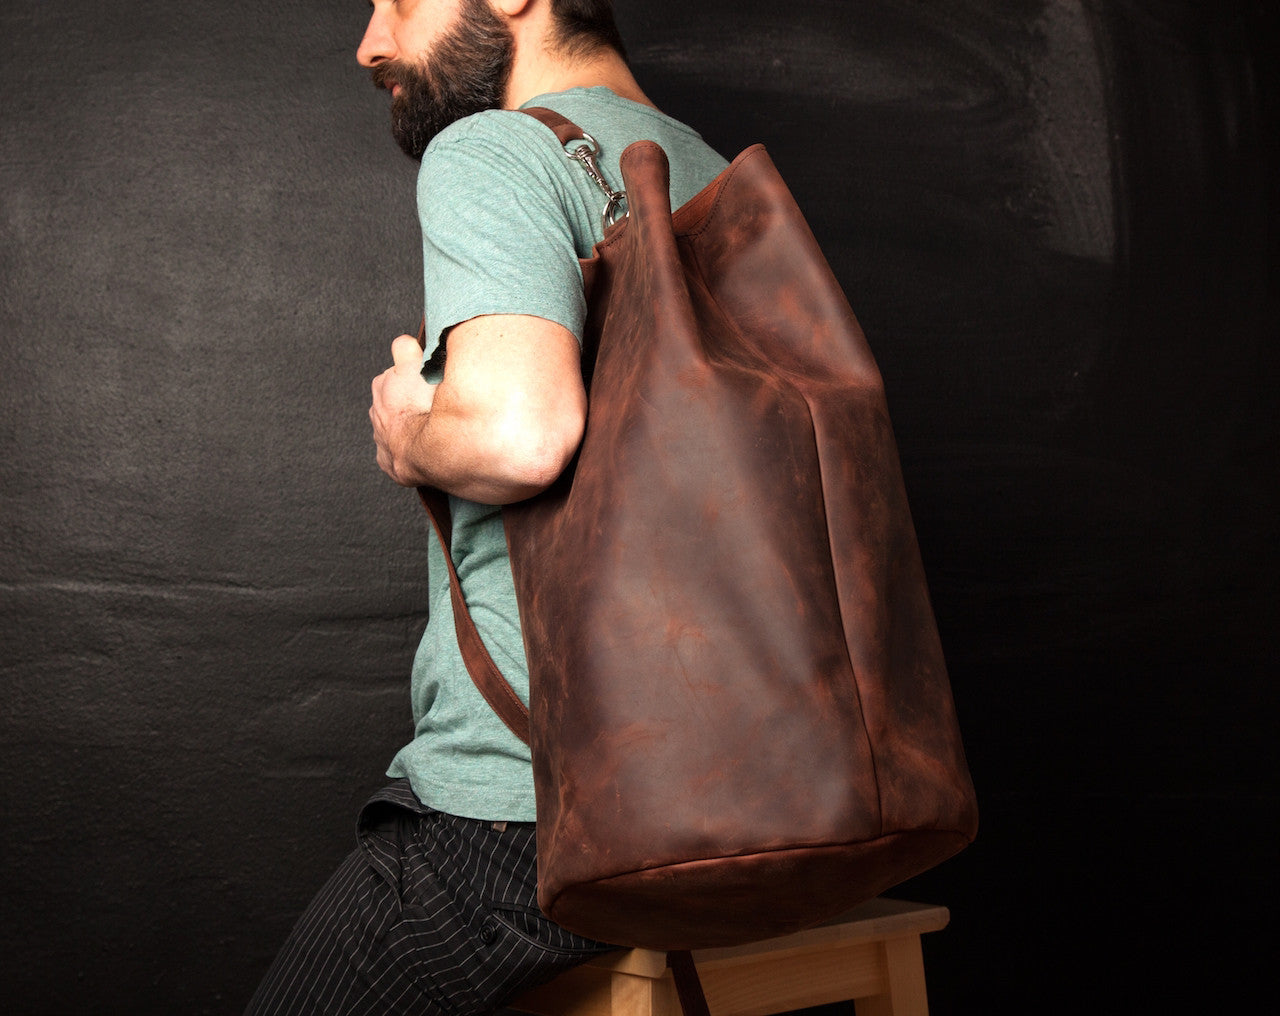 Leather Weekender Duffle Bag for Men and Women - Cognac Brown by Tram 21 on Jetset Times SHOP